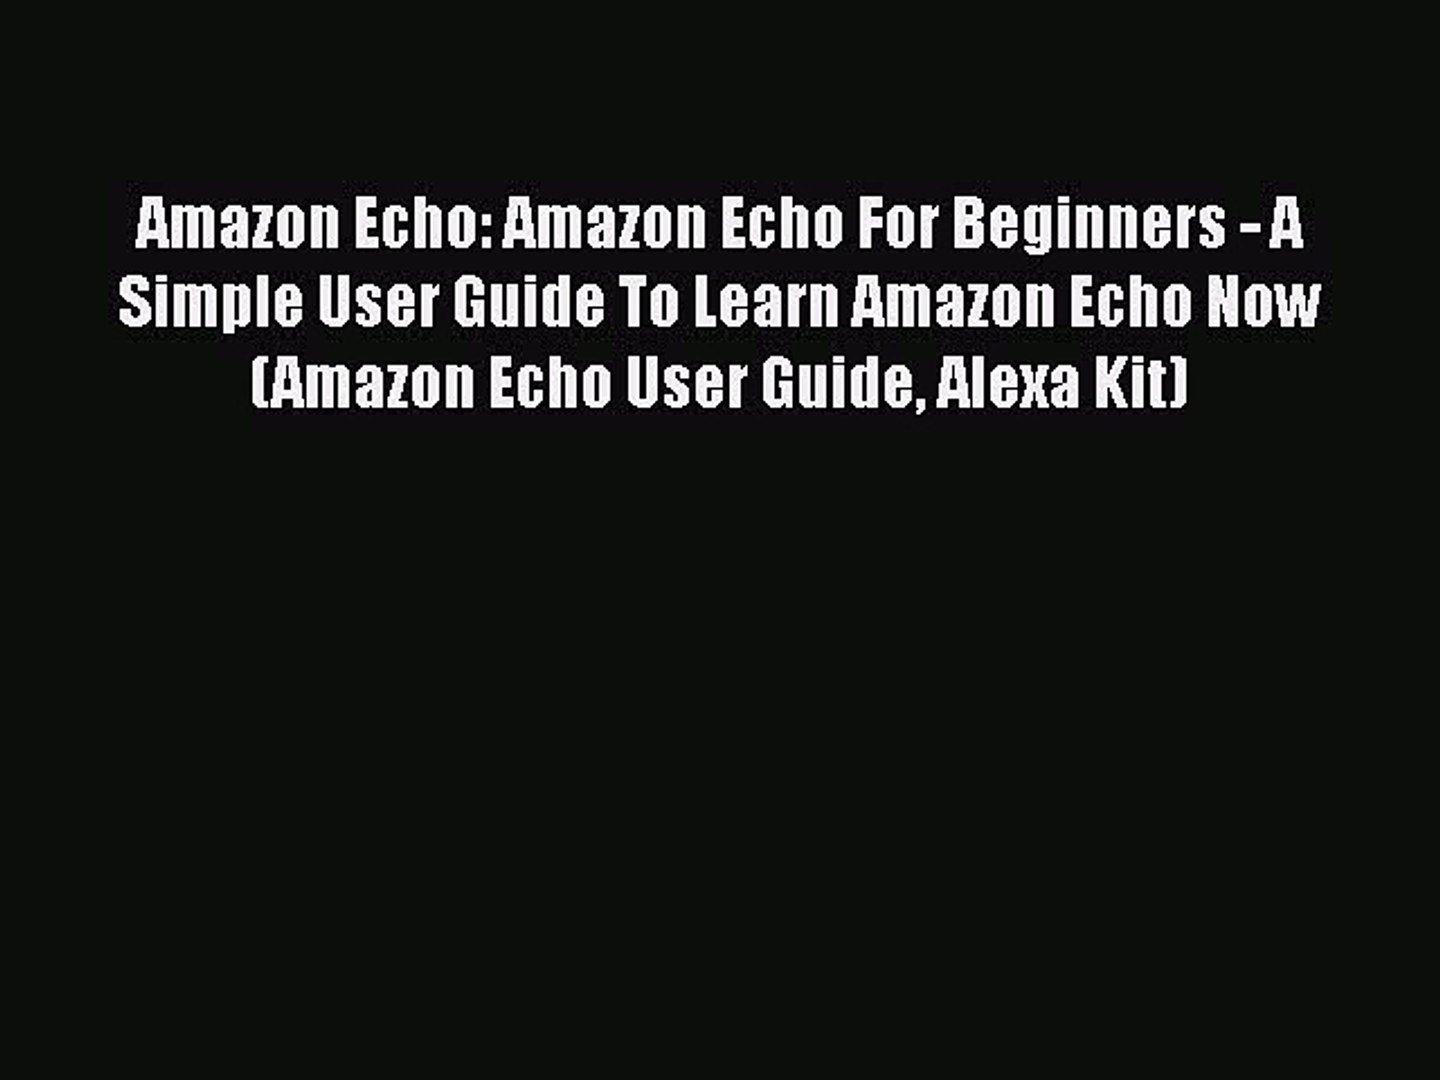 Read Amazon Echo: Amazon Echo For Beginners - A Simple User Guide To Learn Amazon Echo Now